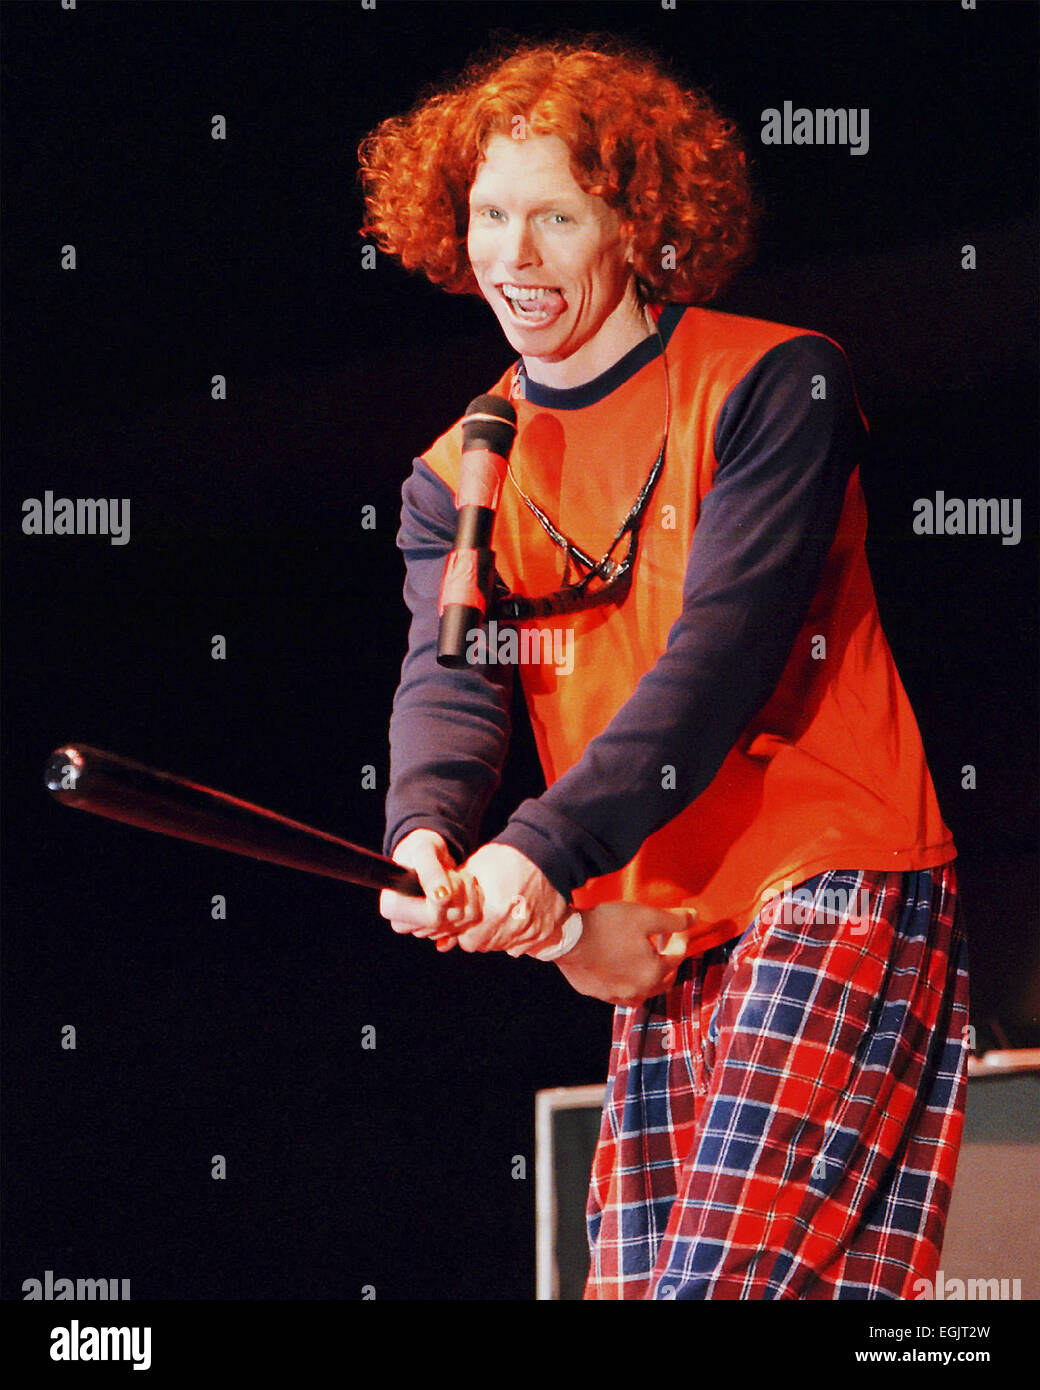 Stand-up comedian Carrot Top, 30, whose real name is Scott ...